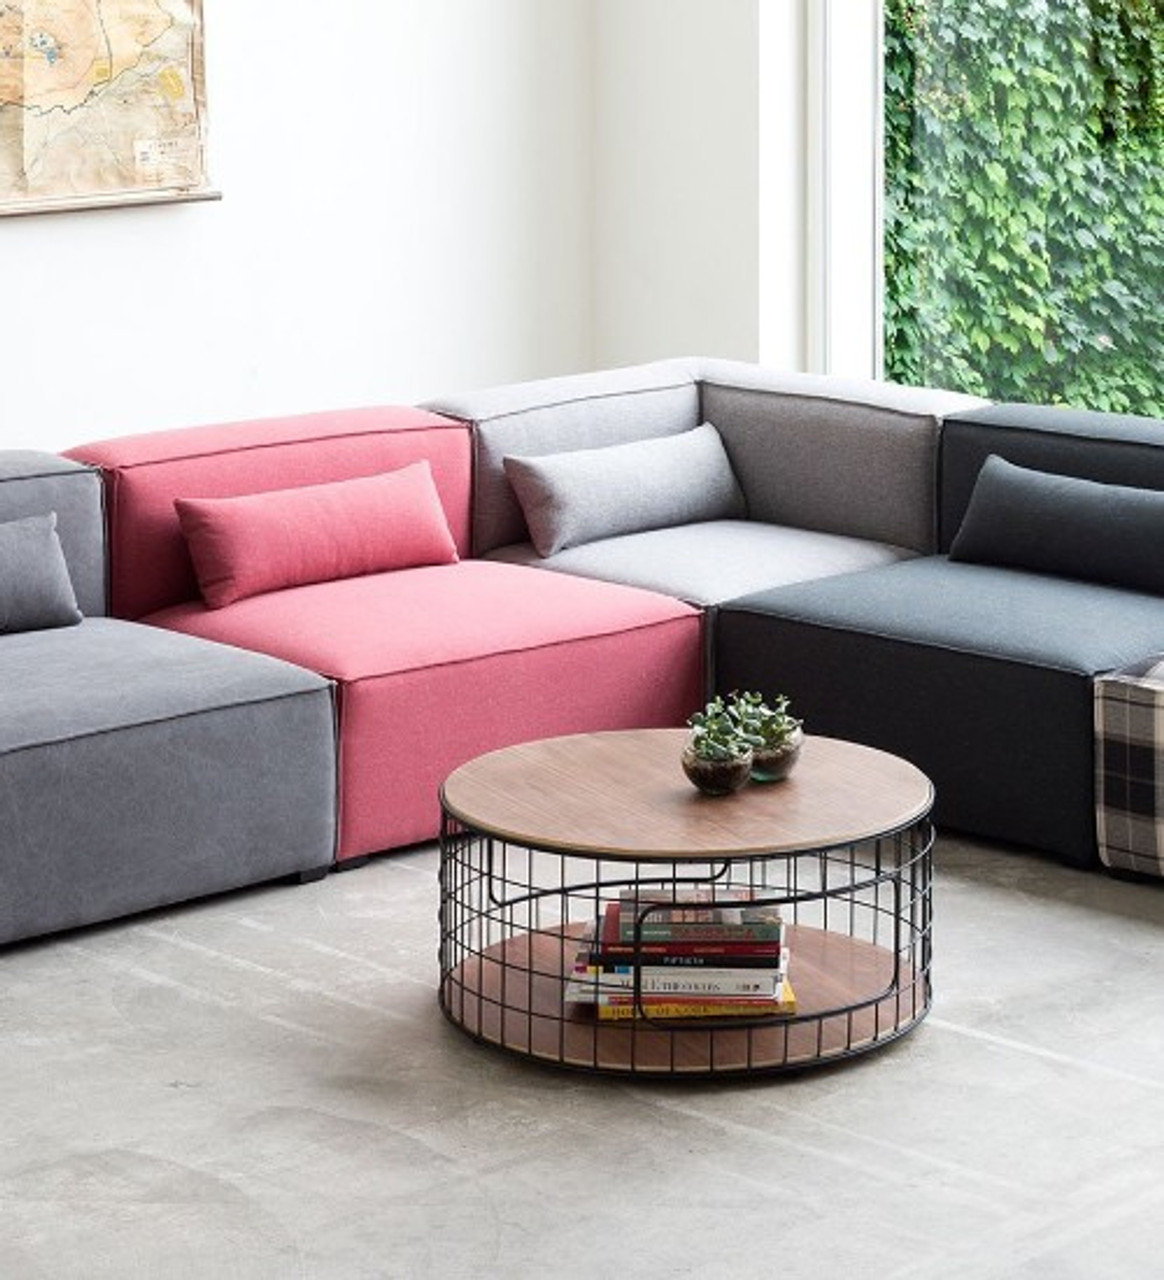 Designer Guide to Best Modular Sectional Sofas! - Zin Home